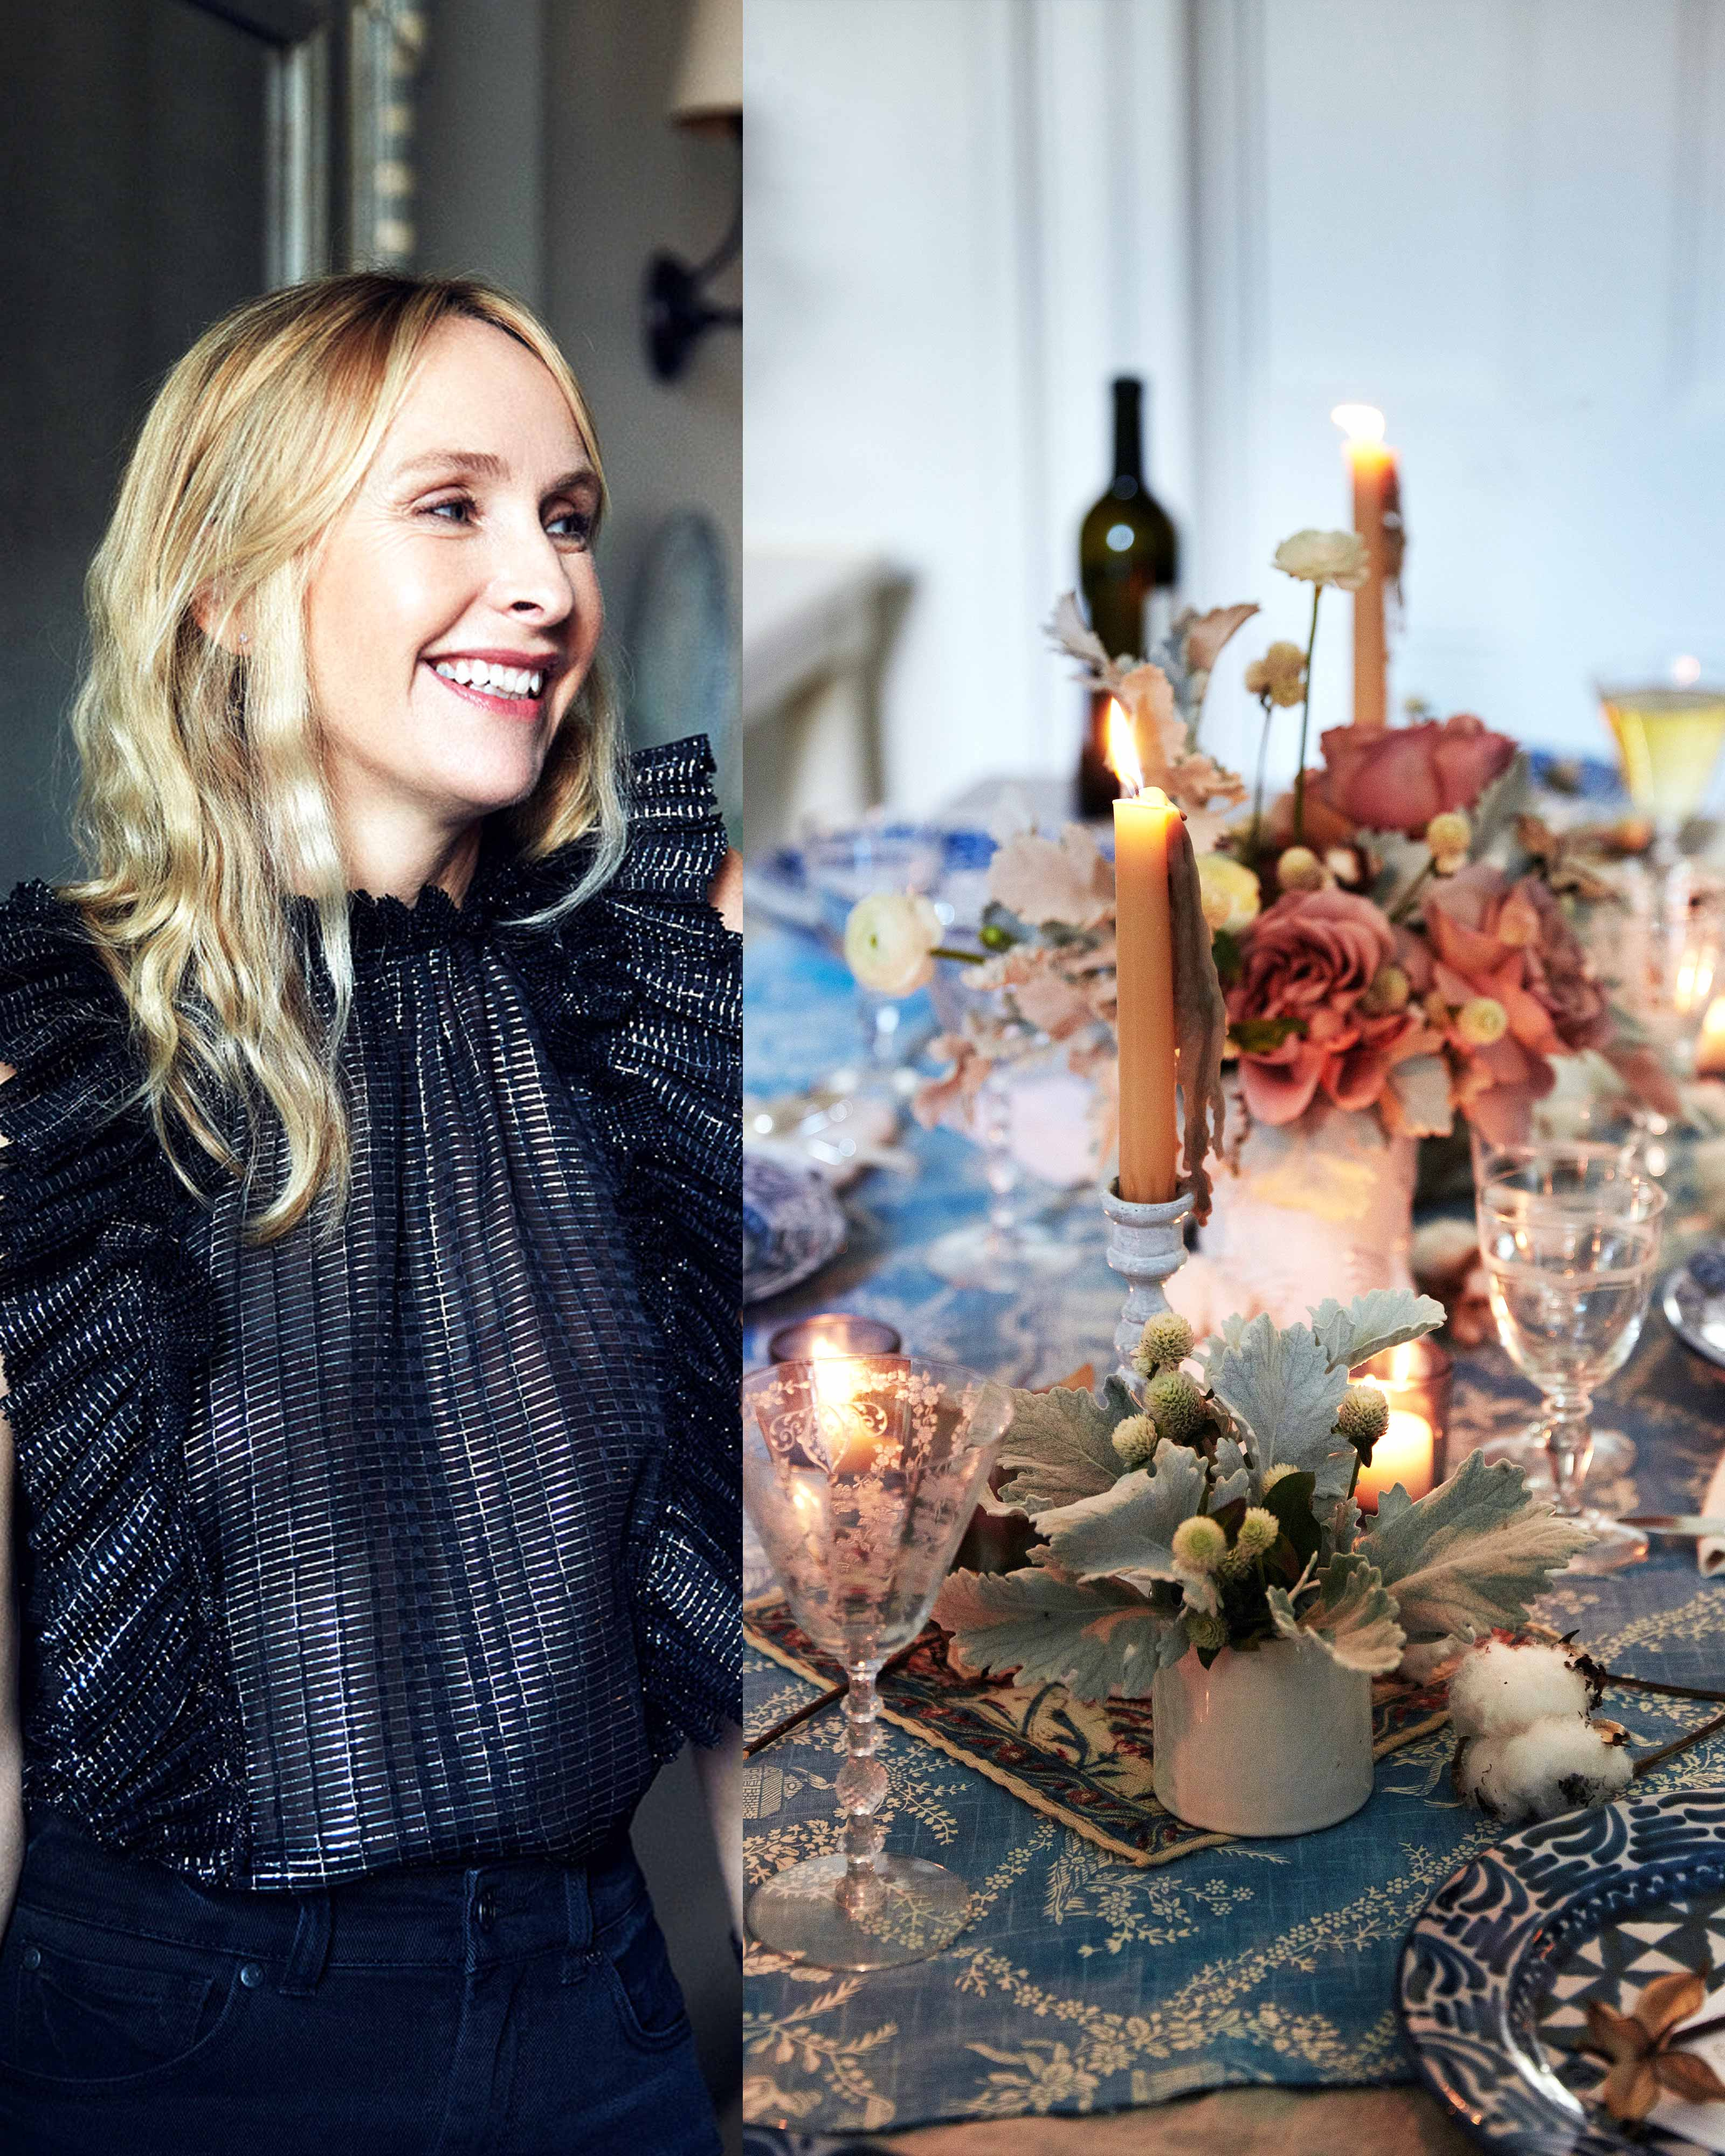 Sparklers and Roses: Rebecca Taylor Shows Us How to Throw a Feminine Holiday Party